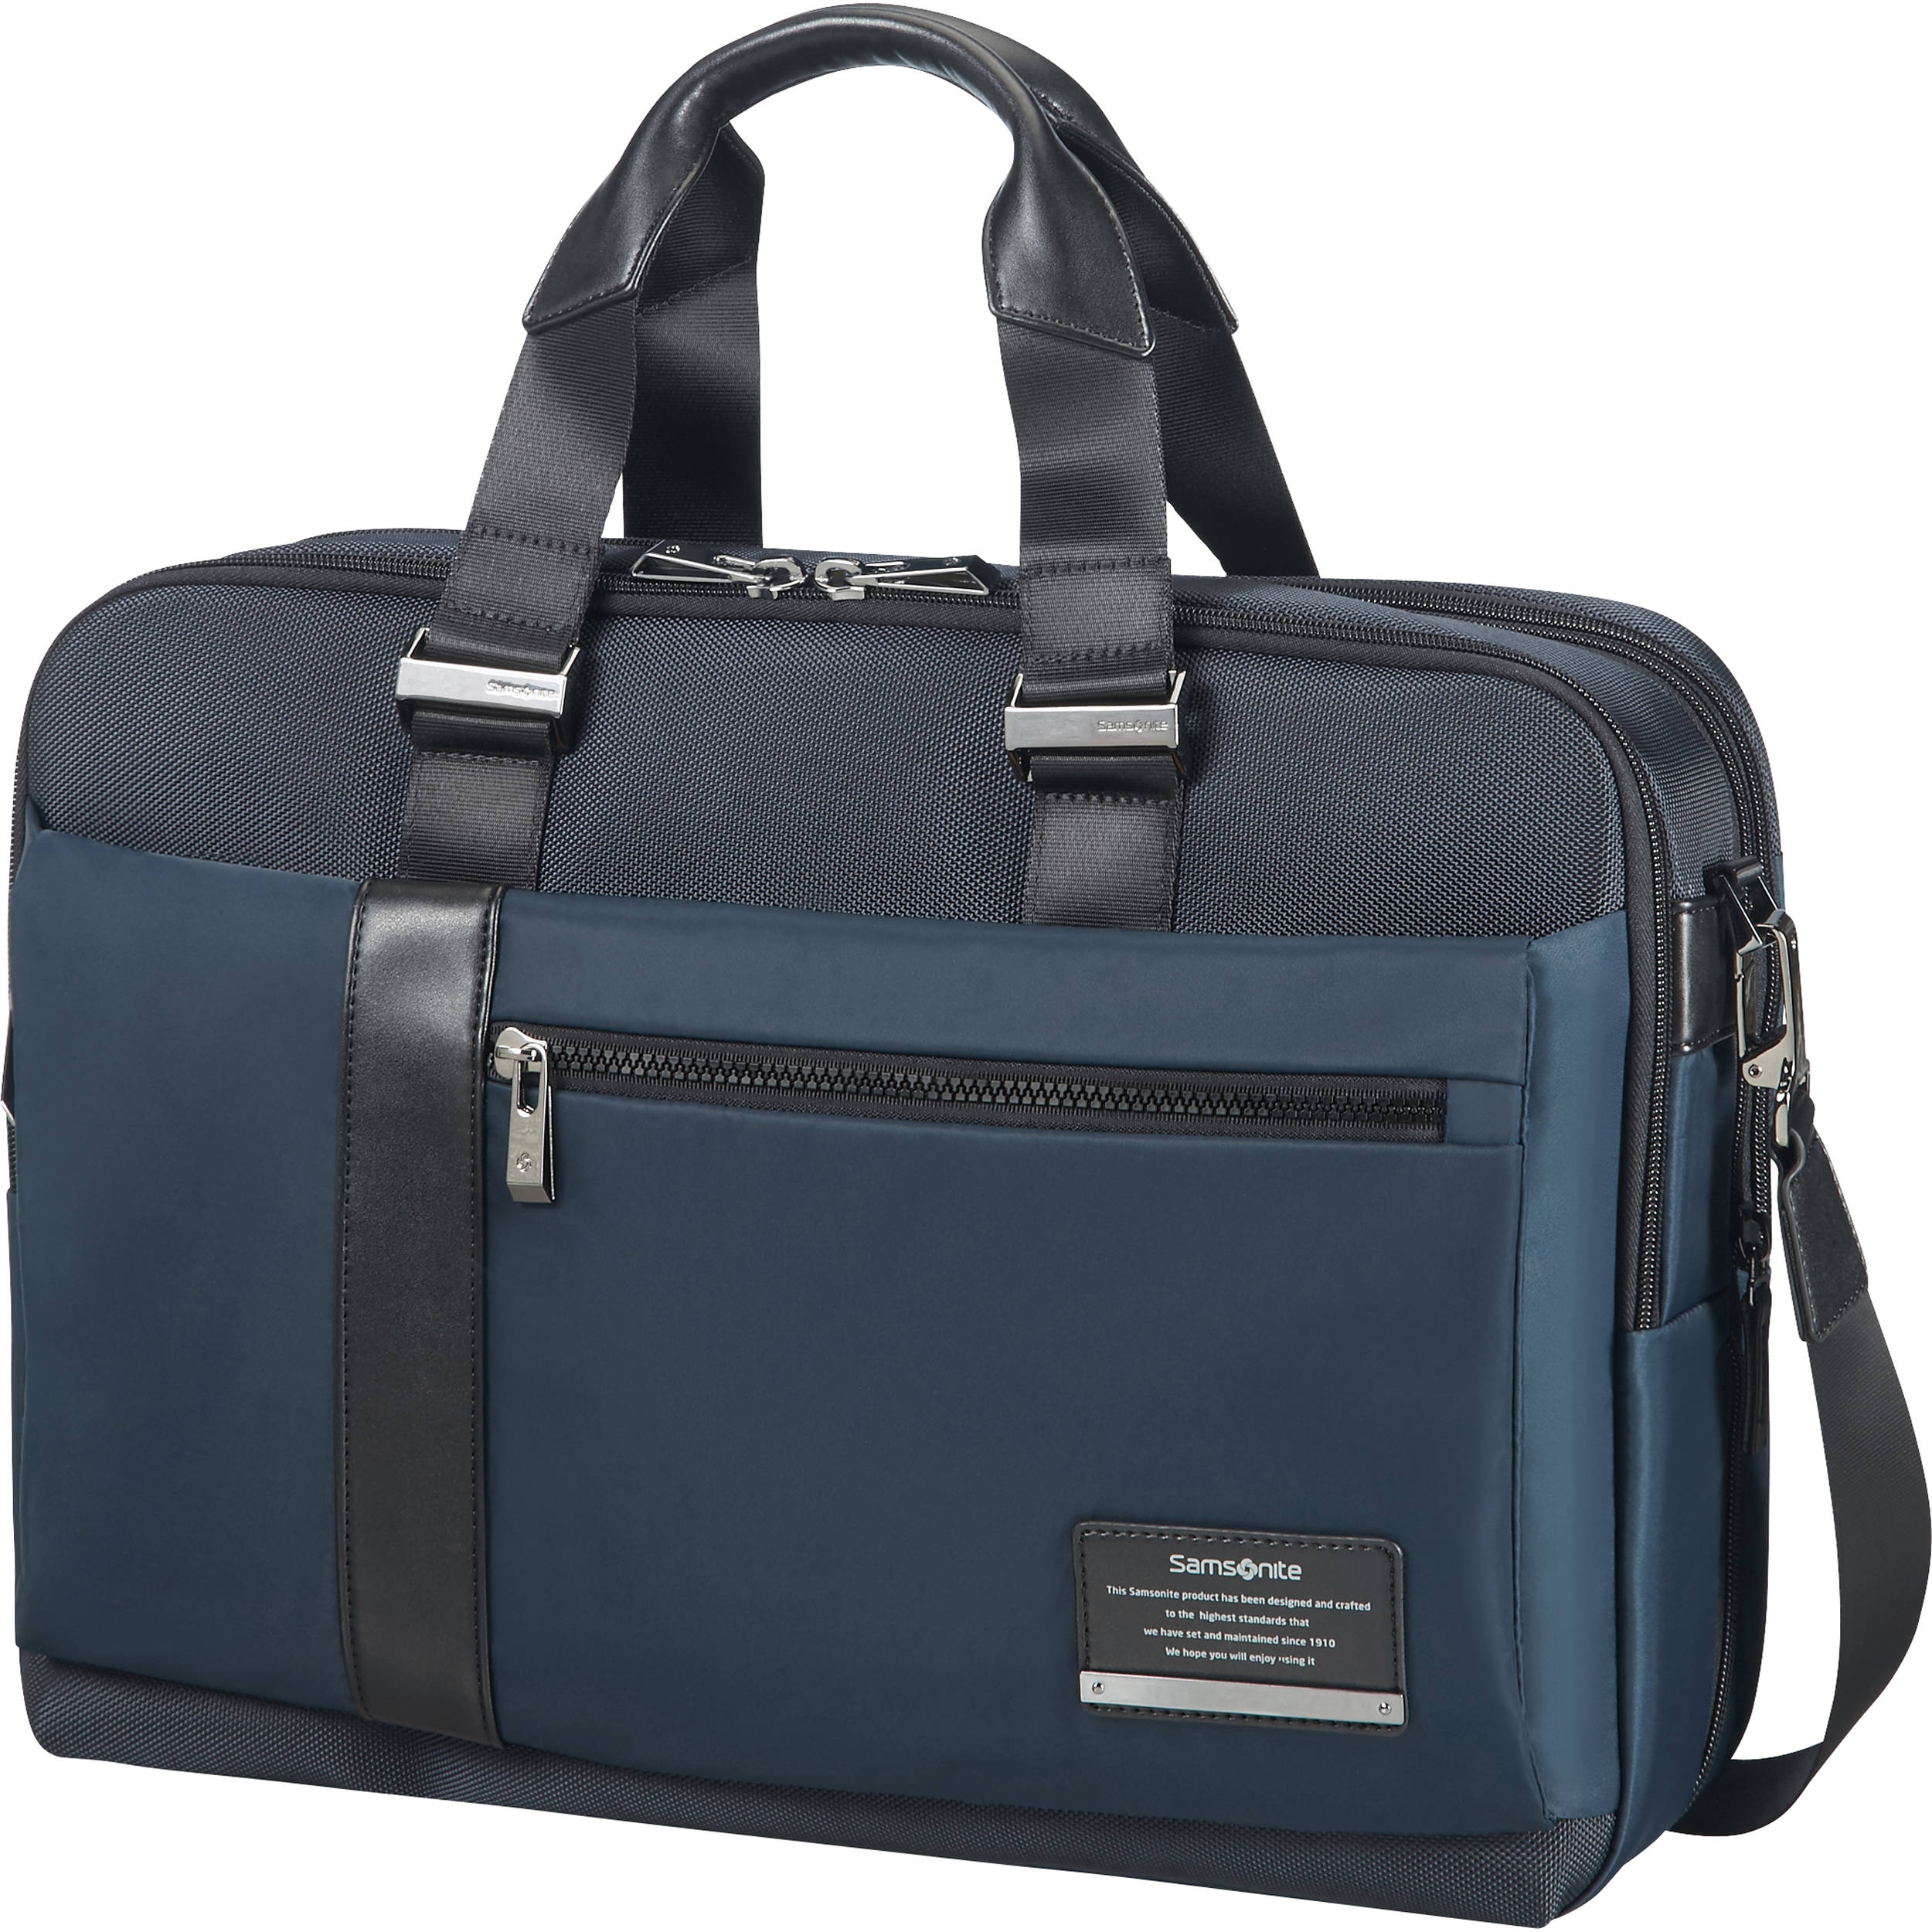 Samsonite leather expandable briefcase review